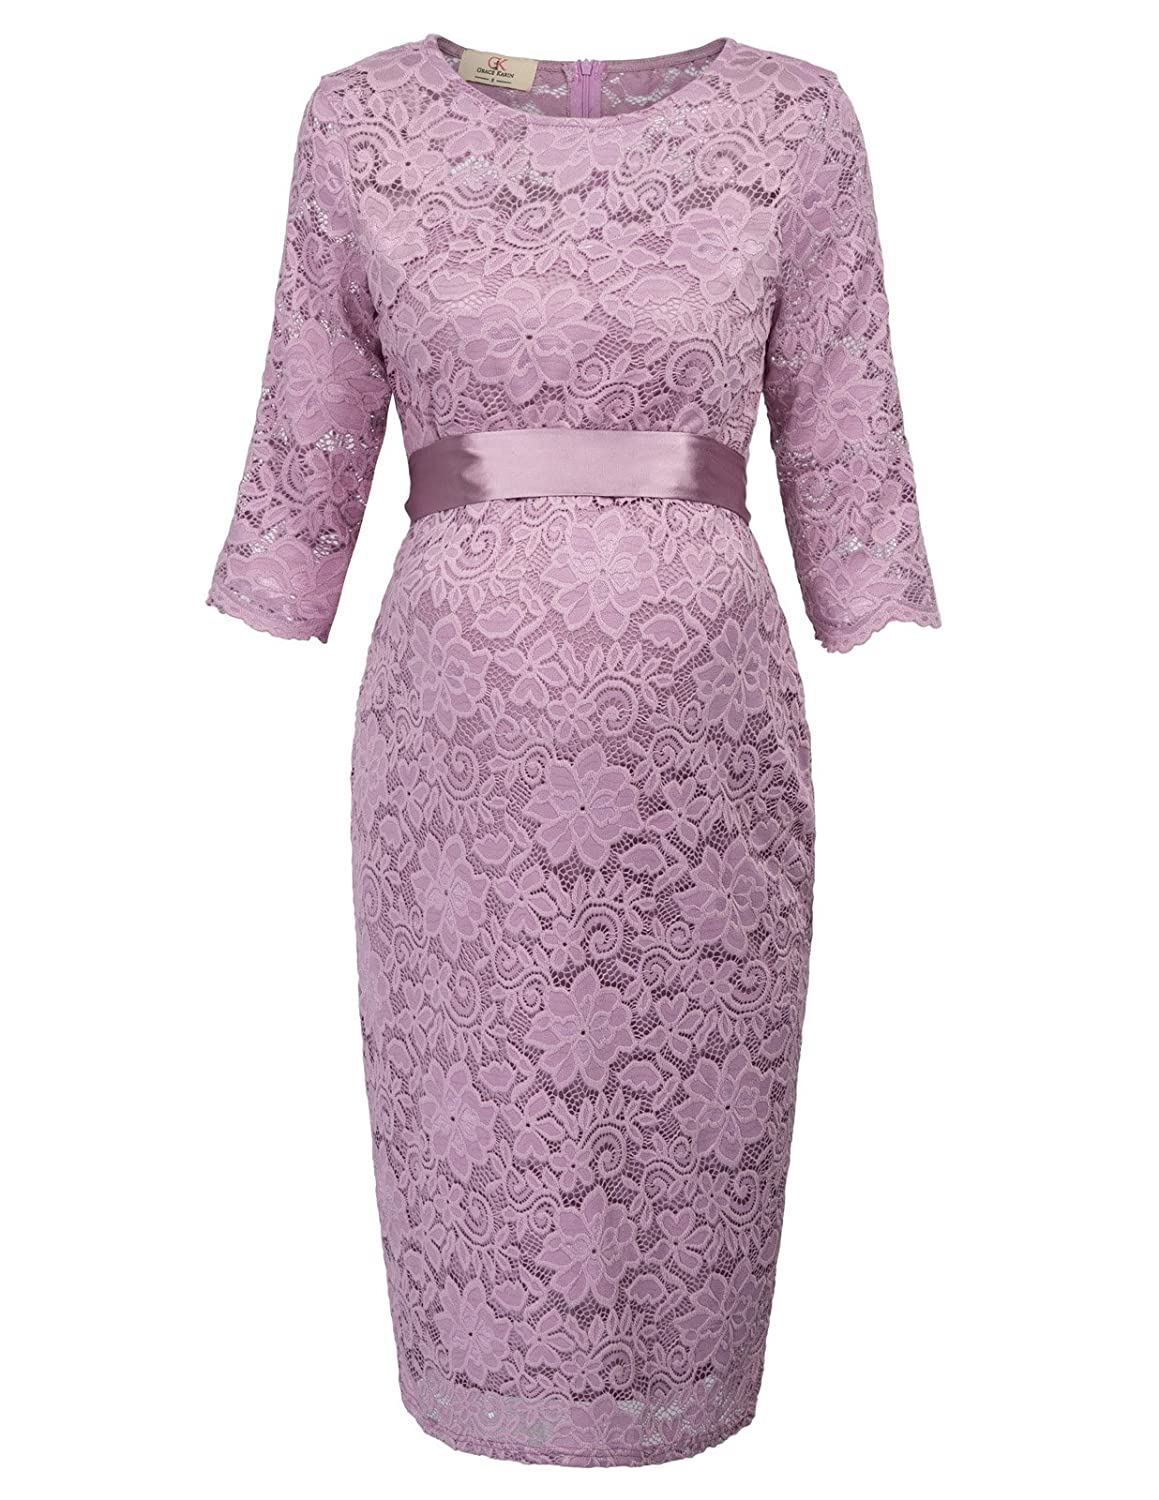 Trendy Fashion Maternity Women Half Sleeve Lace Party Evening Dress AF1026